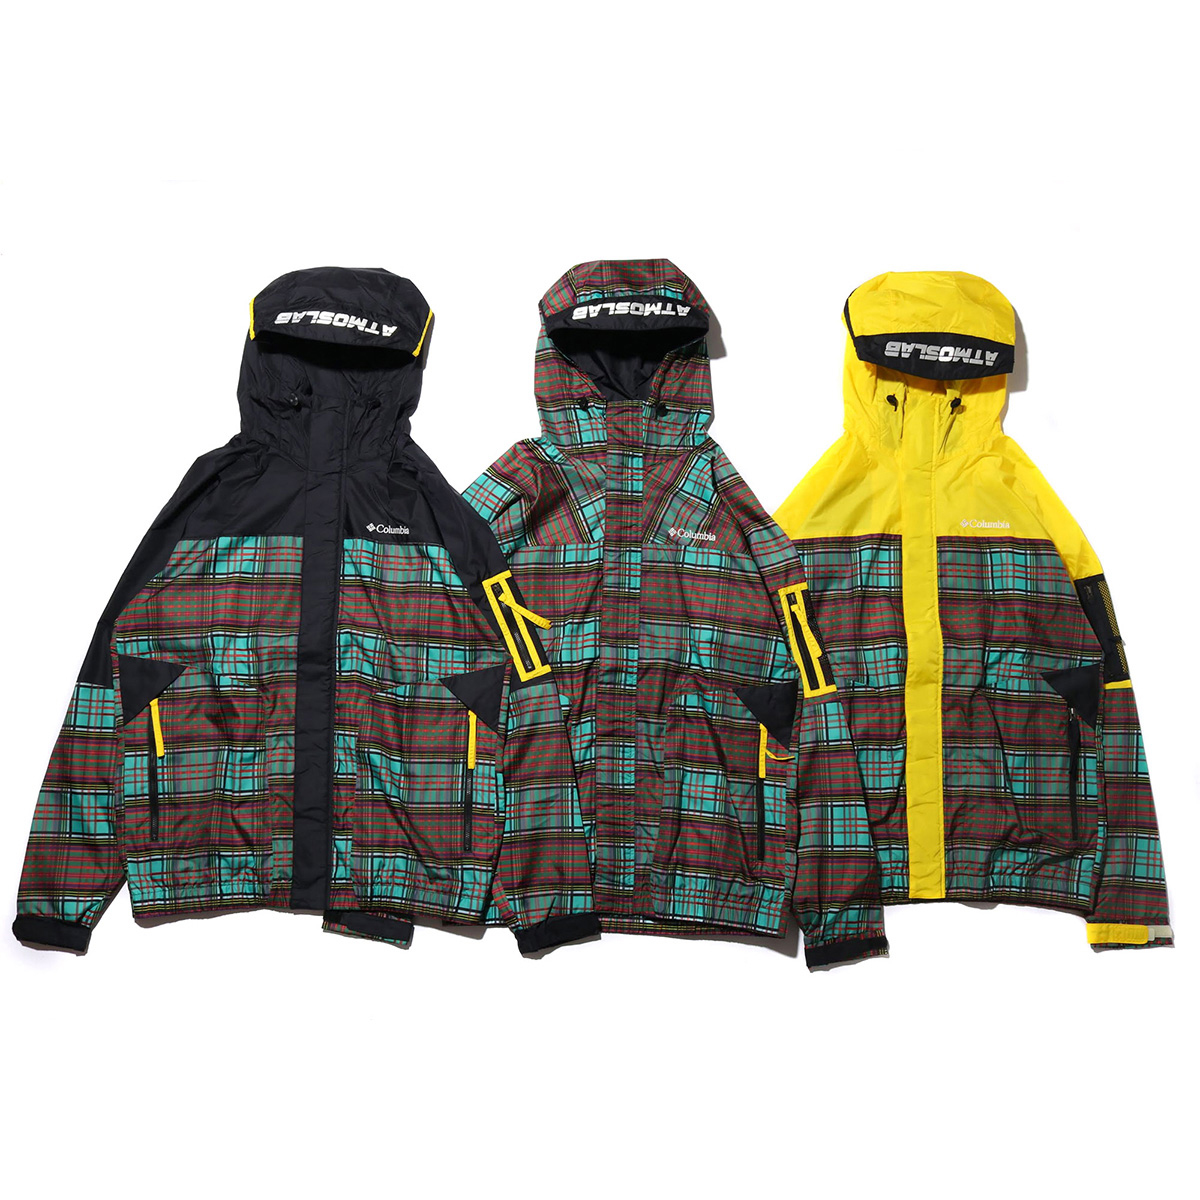 Columbia x ATMOS LAB PAVLOF ROAD TXT JACKET